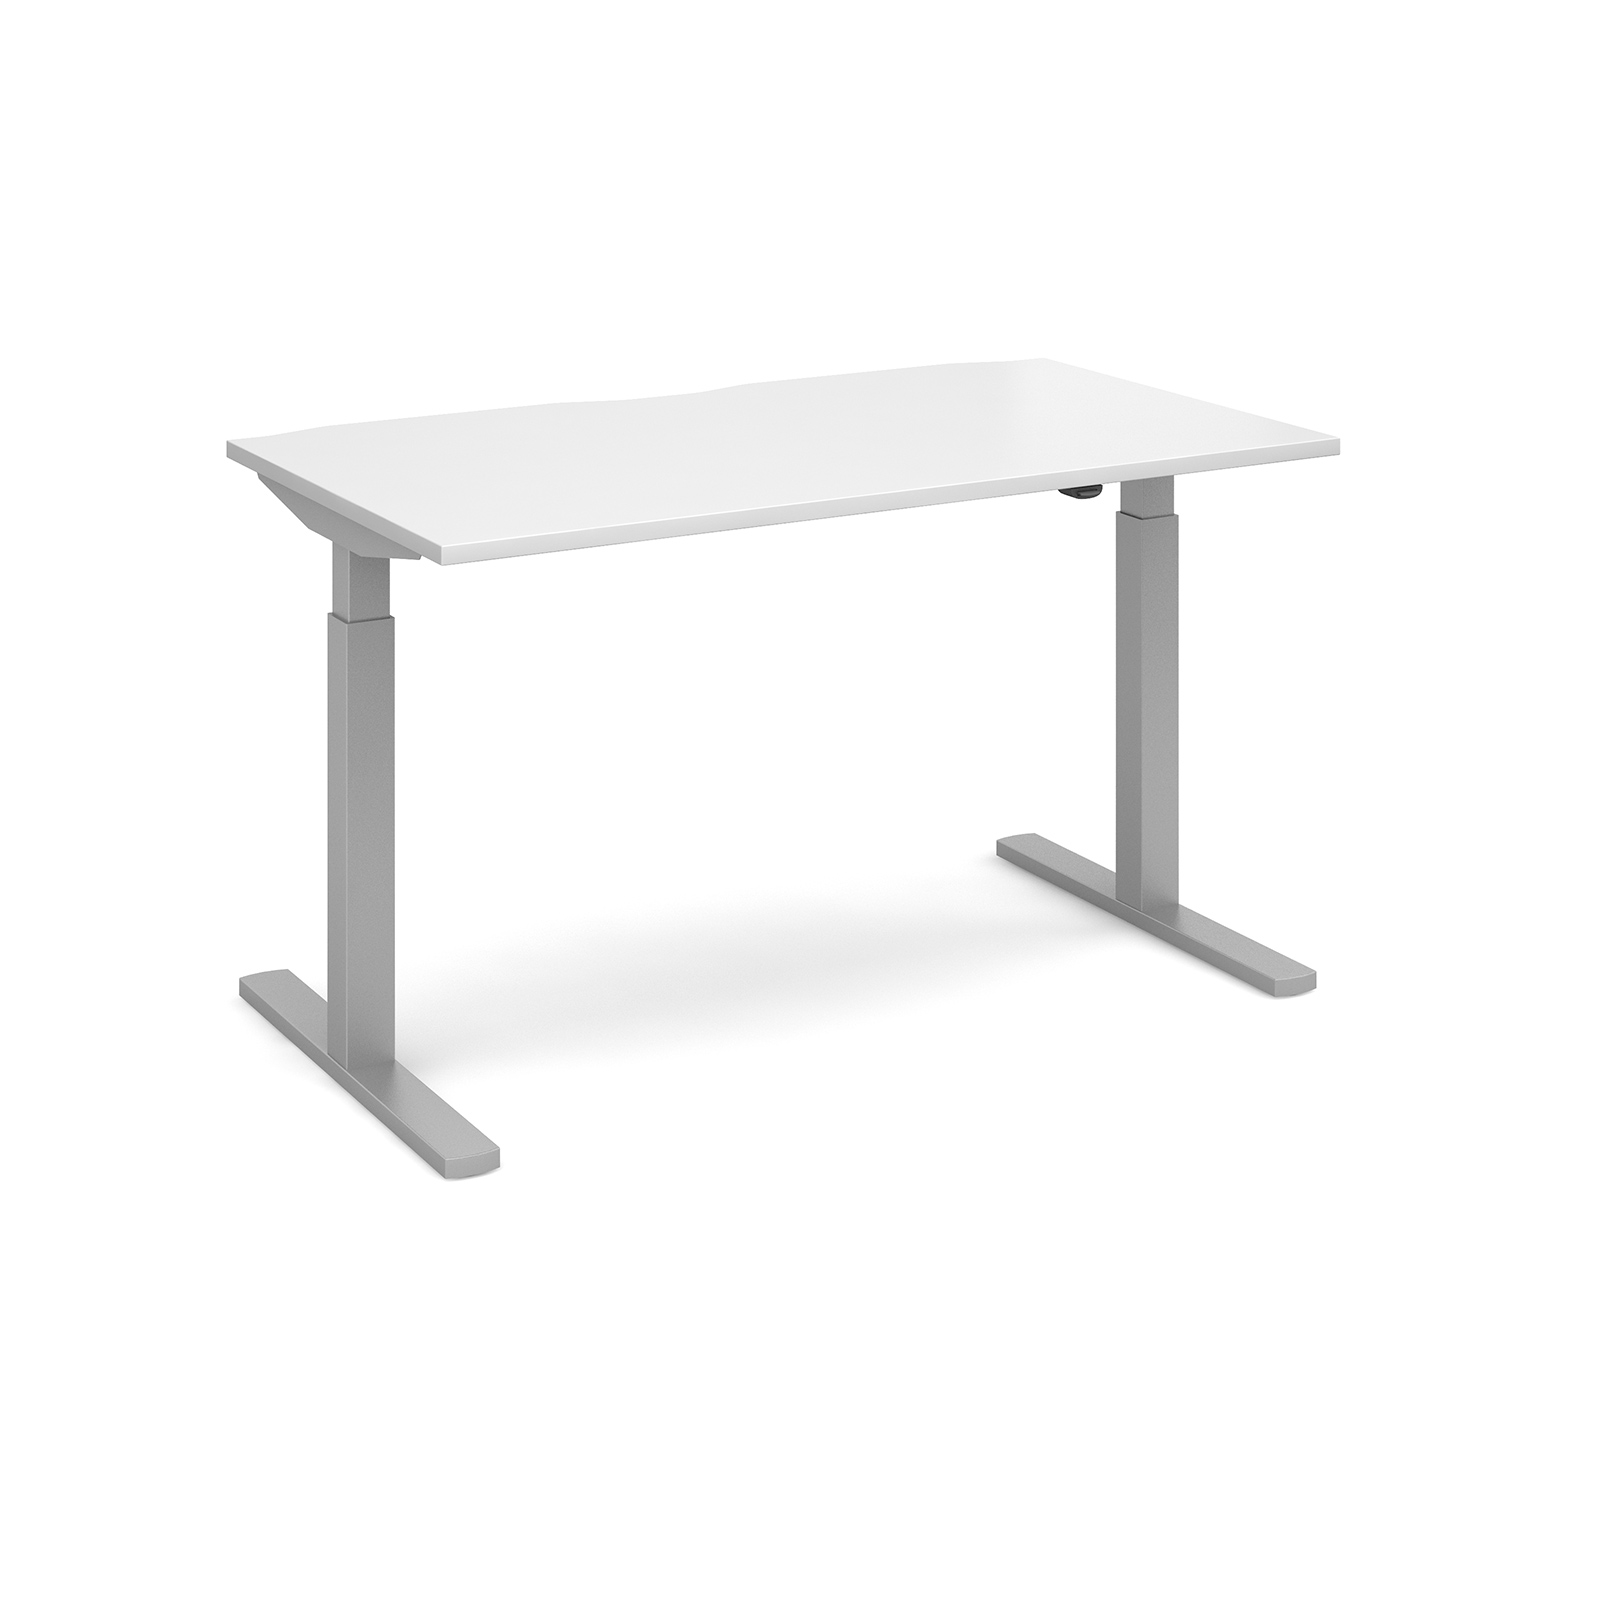 Elev8 Mono Straight Sit-Stand Desk 1400mm x 800mm - Silver Frame, White Top